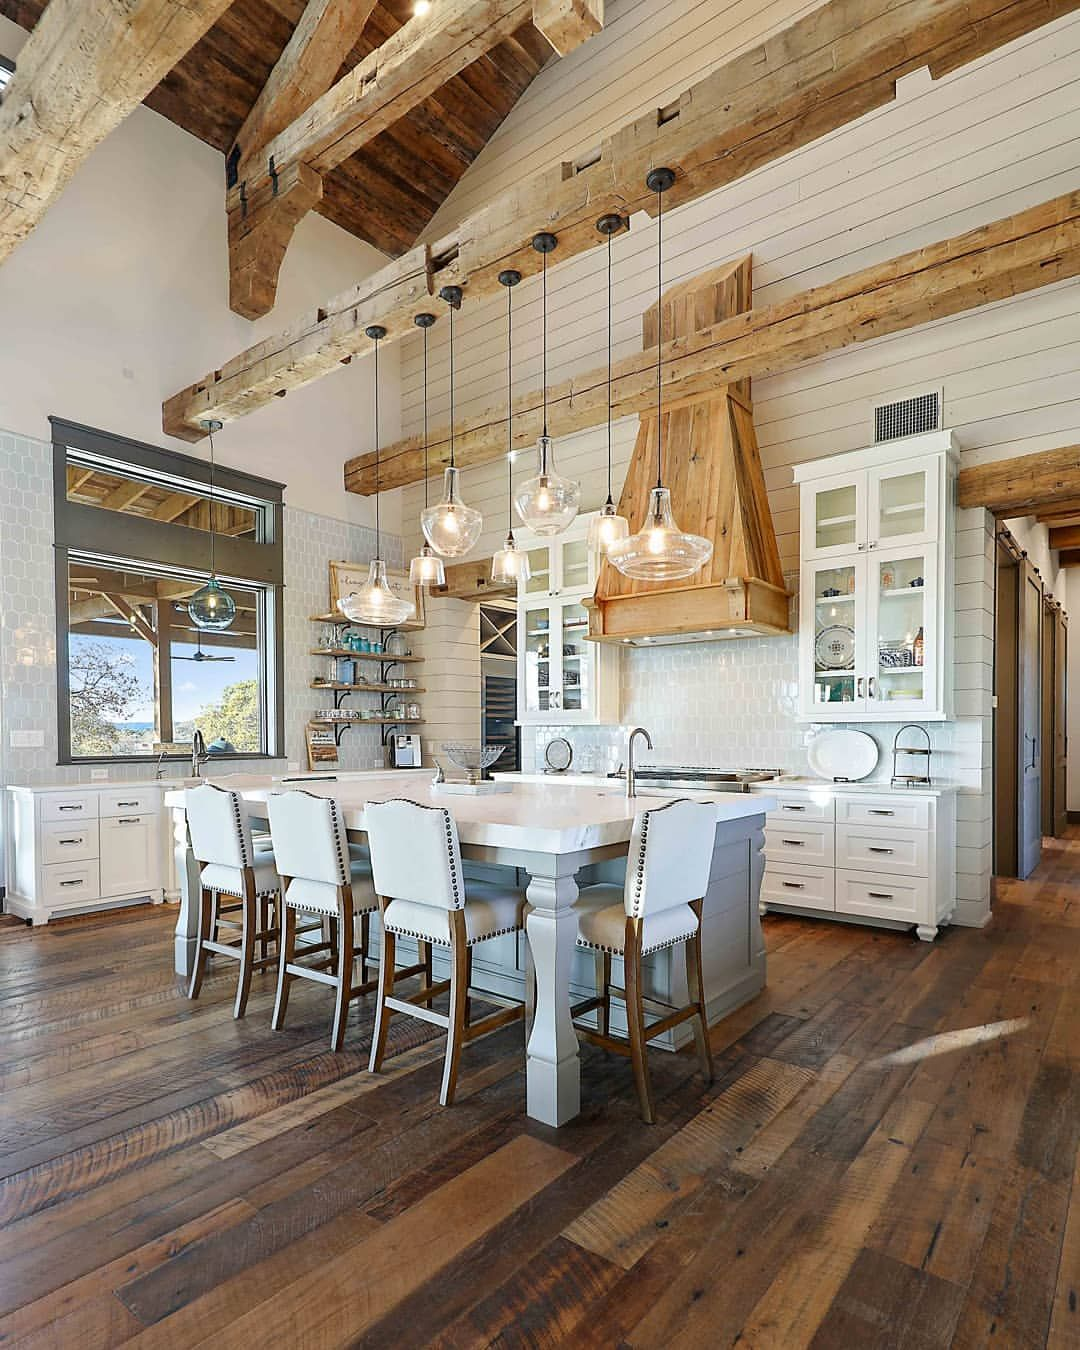 Kitchen Table Alternatives: Love The Island Alternative To A Breakfast/dining Table